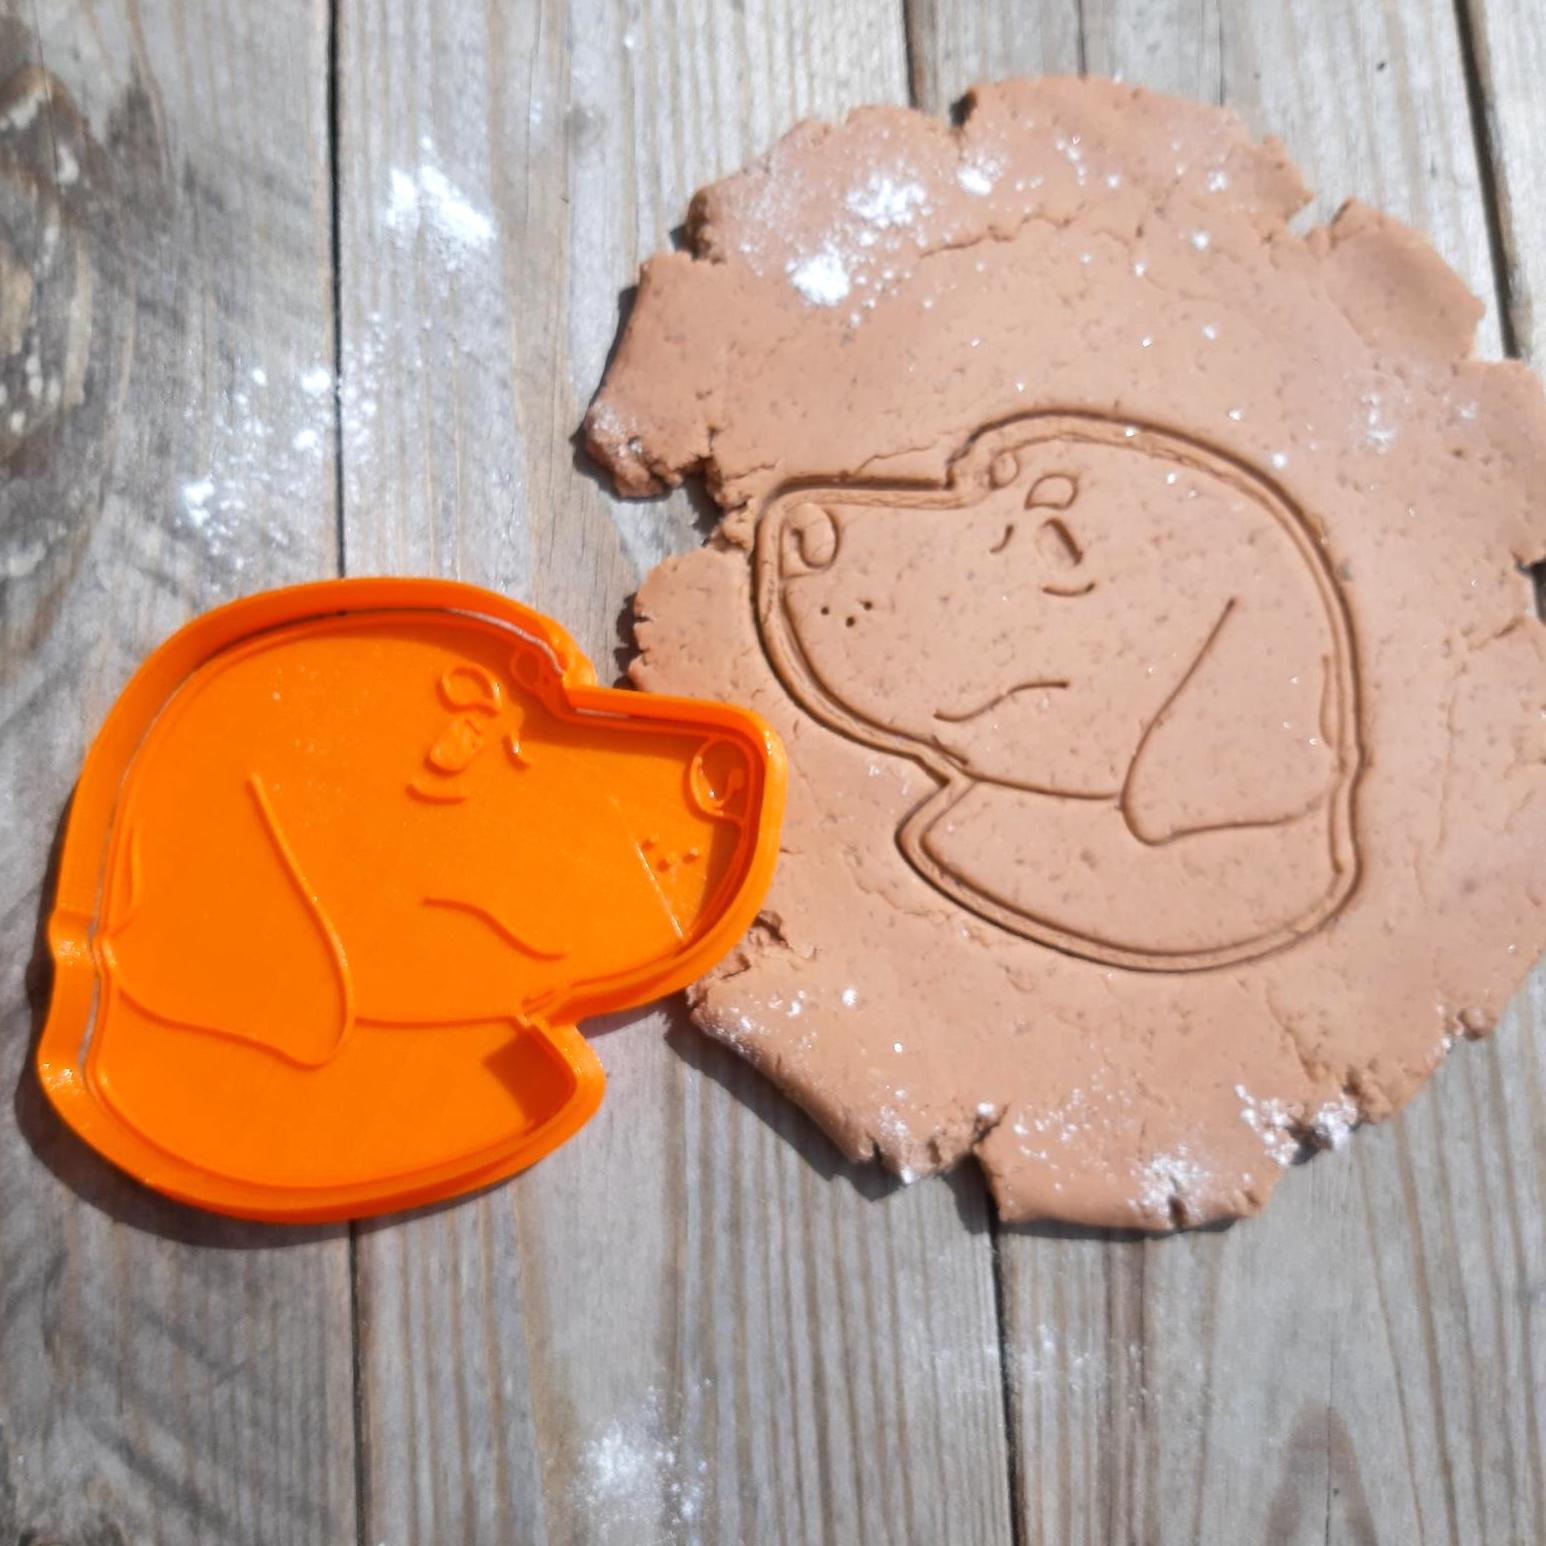 dog cookie cutter and dough pressed with cookie cutter stamp